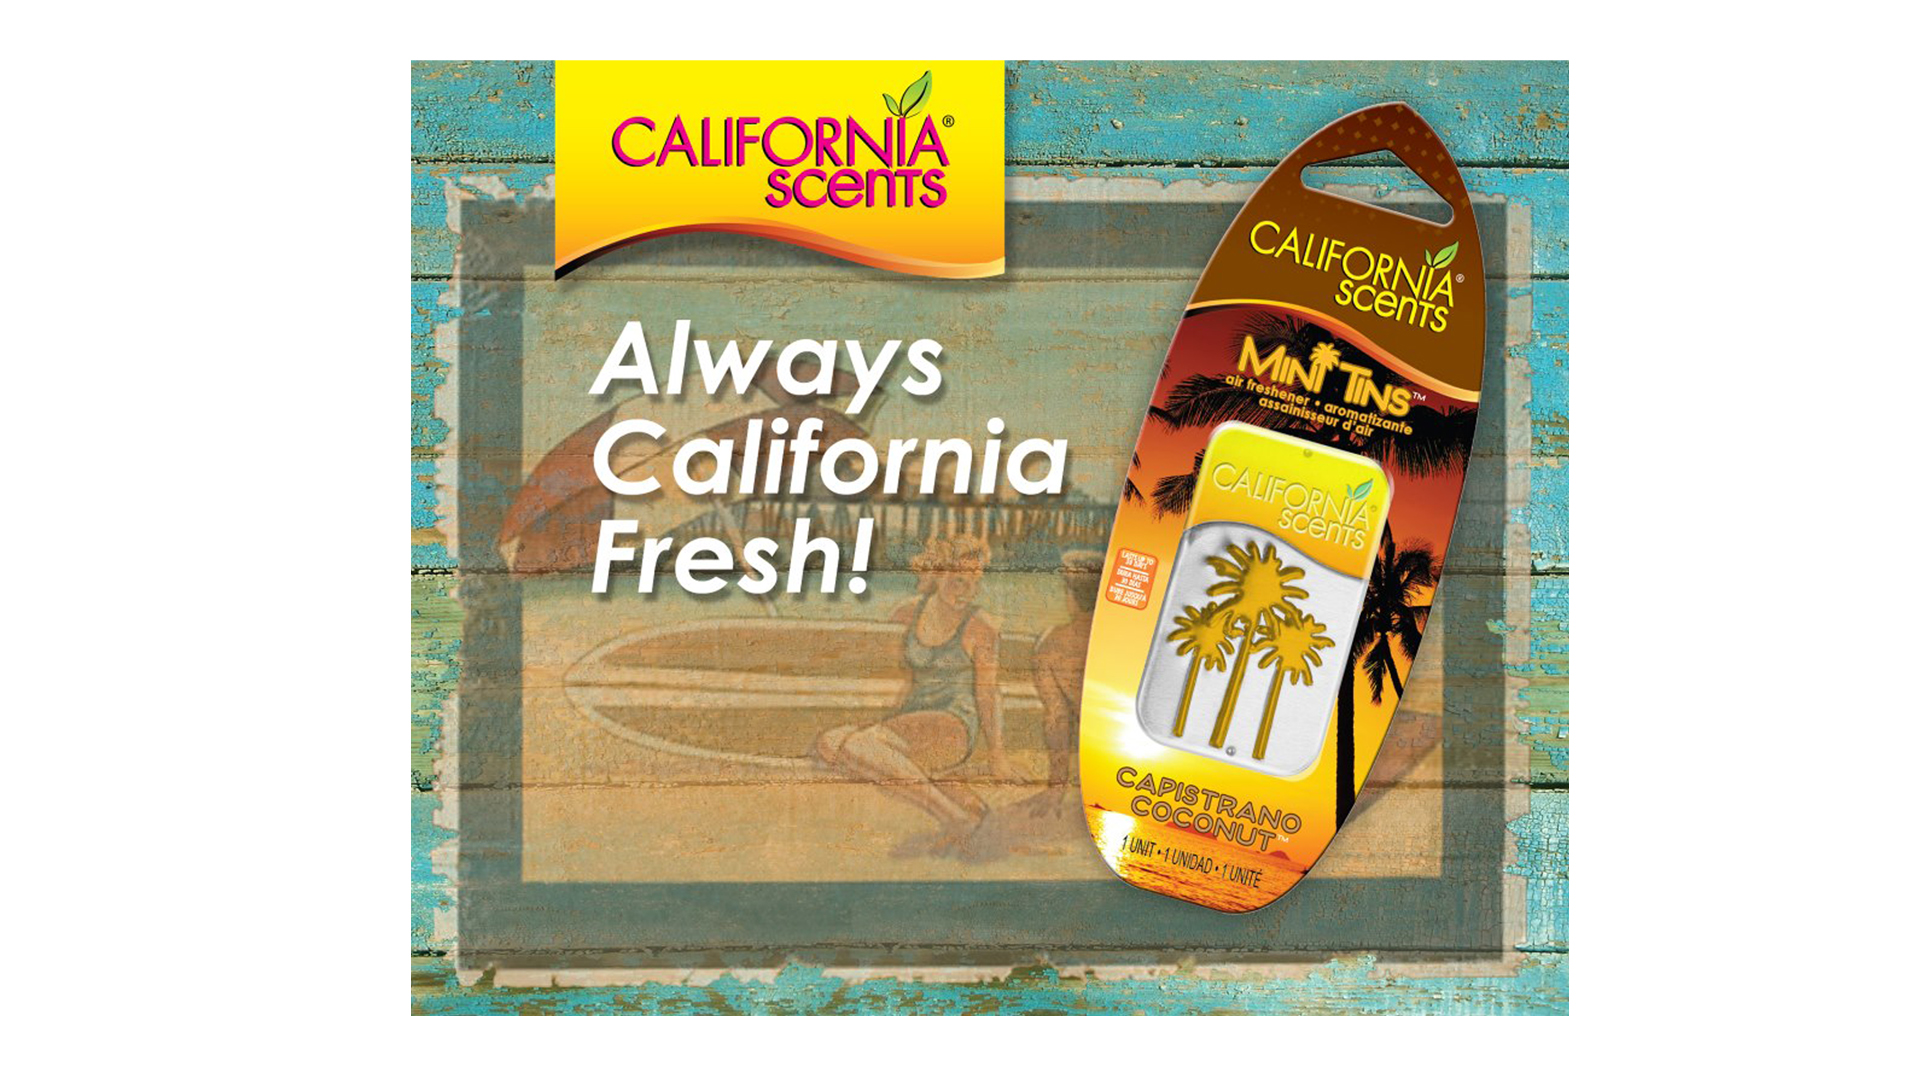 California Scents, consumer  air freshener product Social Media content